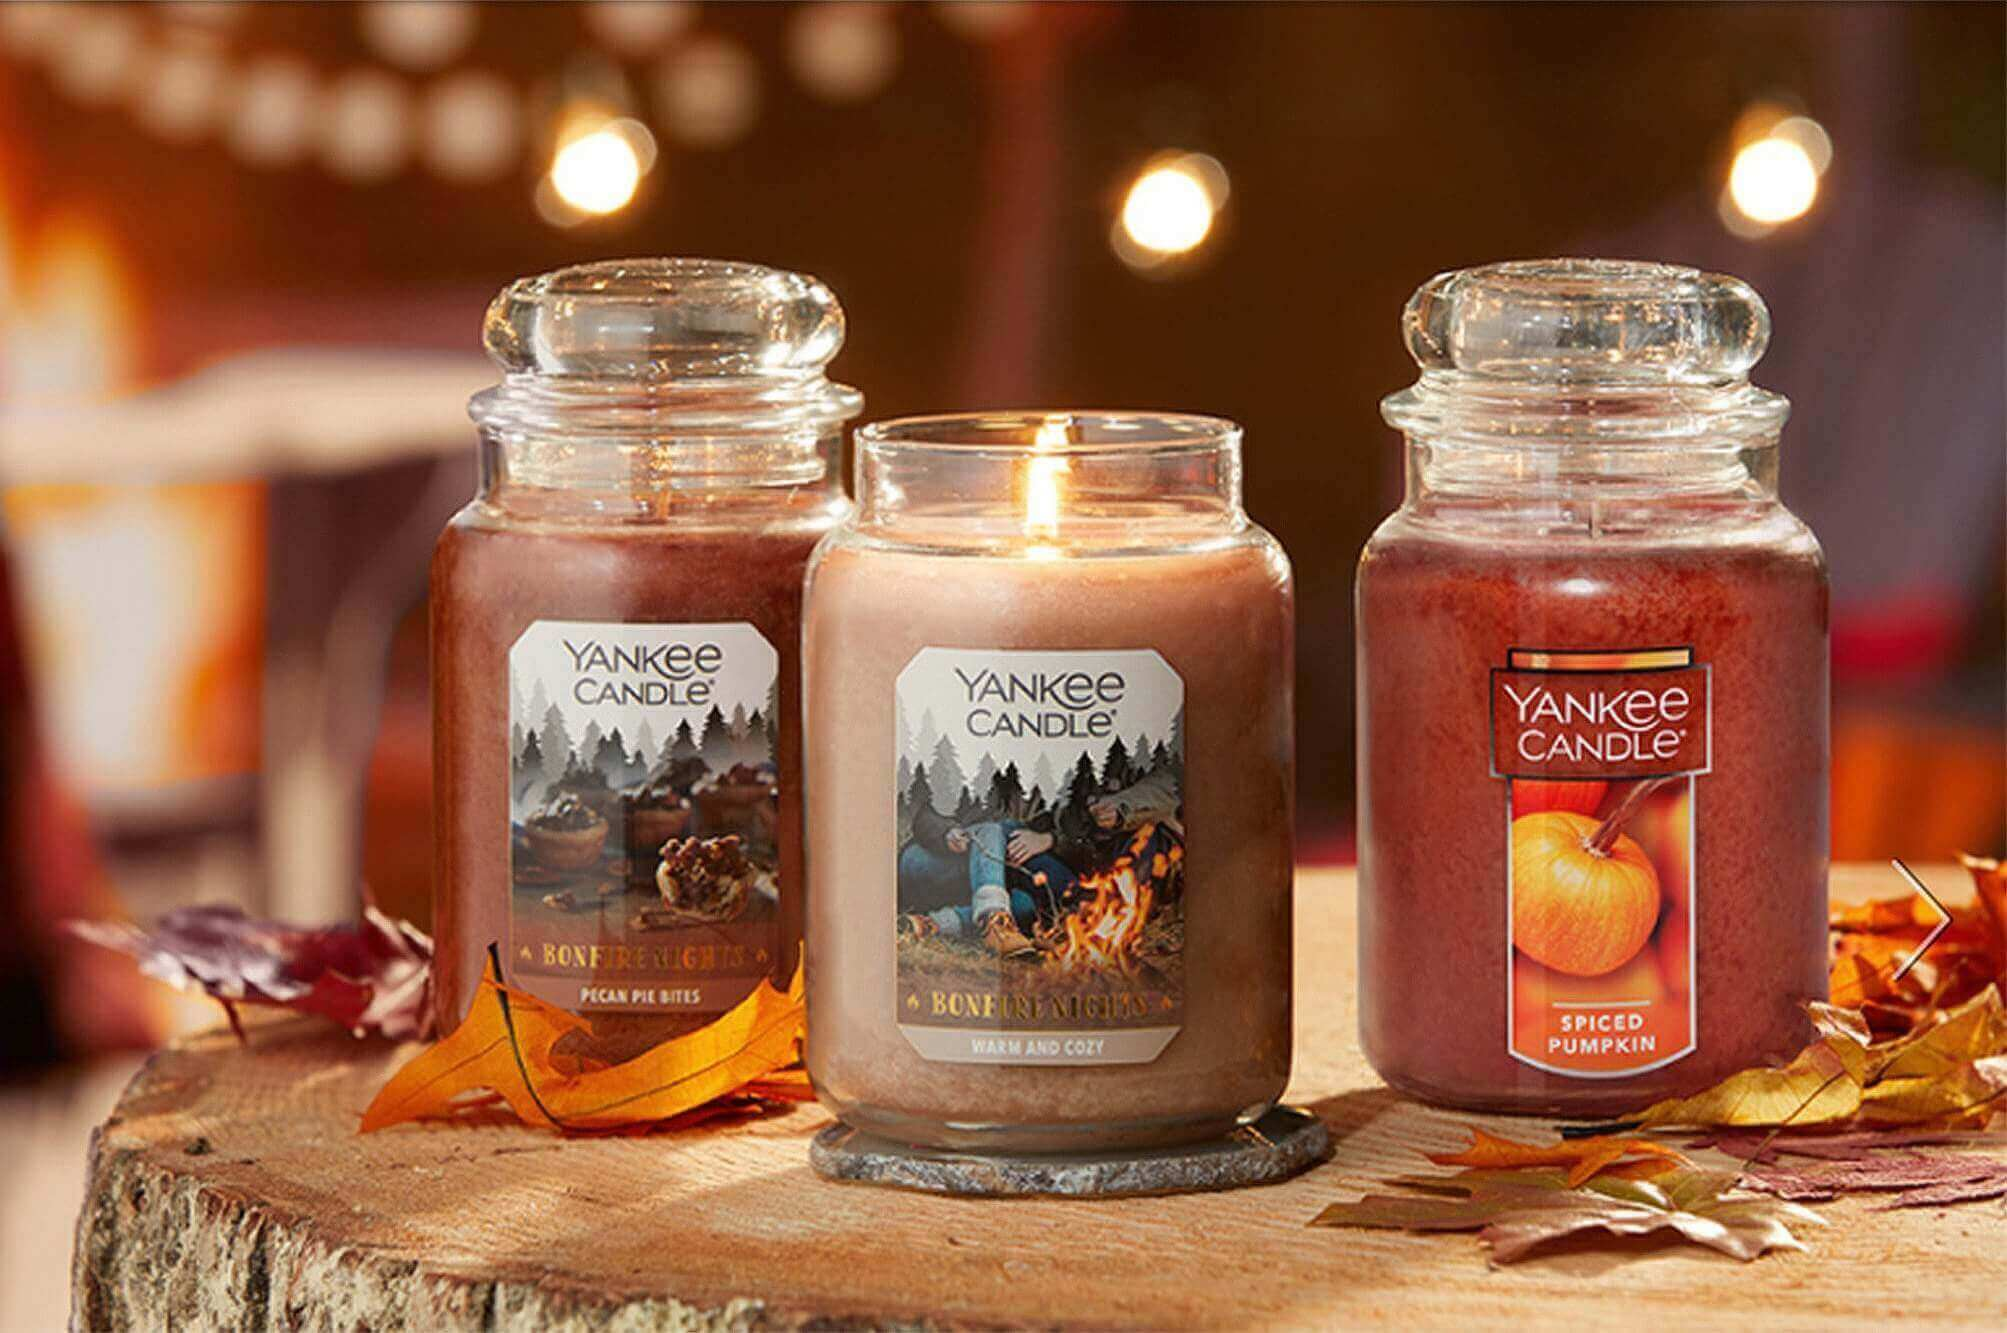 Yankee-Candle-Fall-September-Sale-2020 (1) (1) (1)